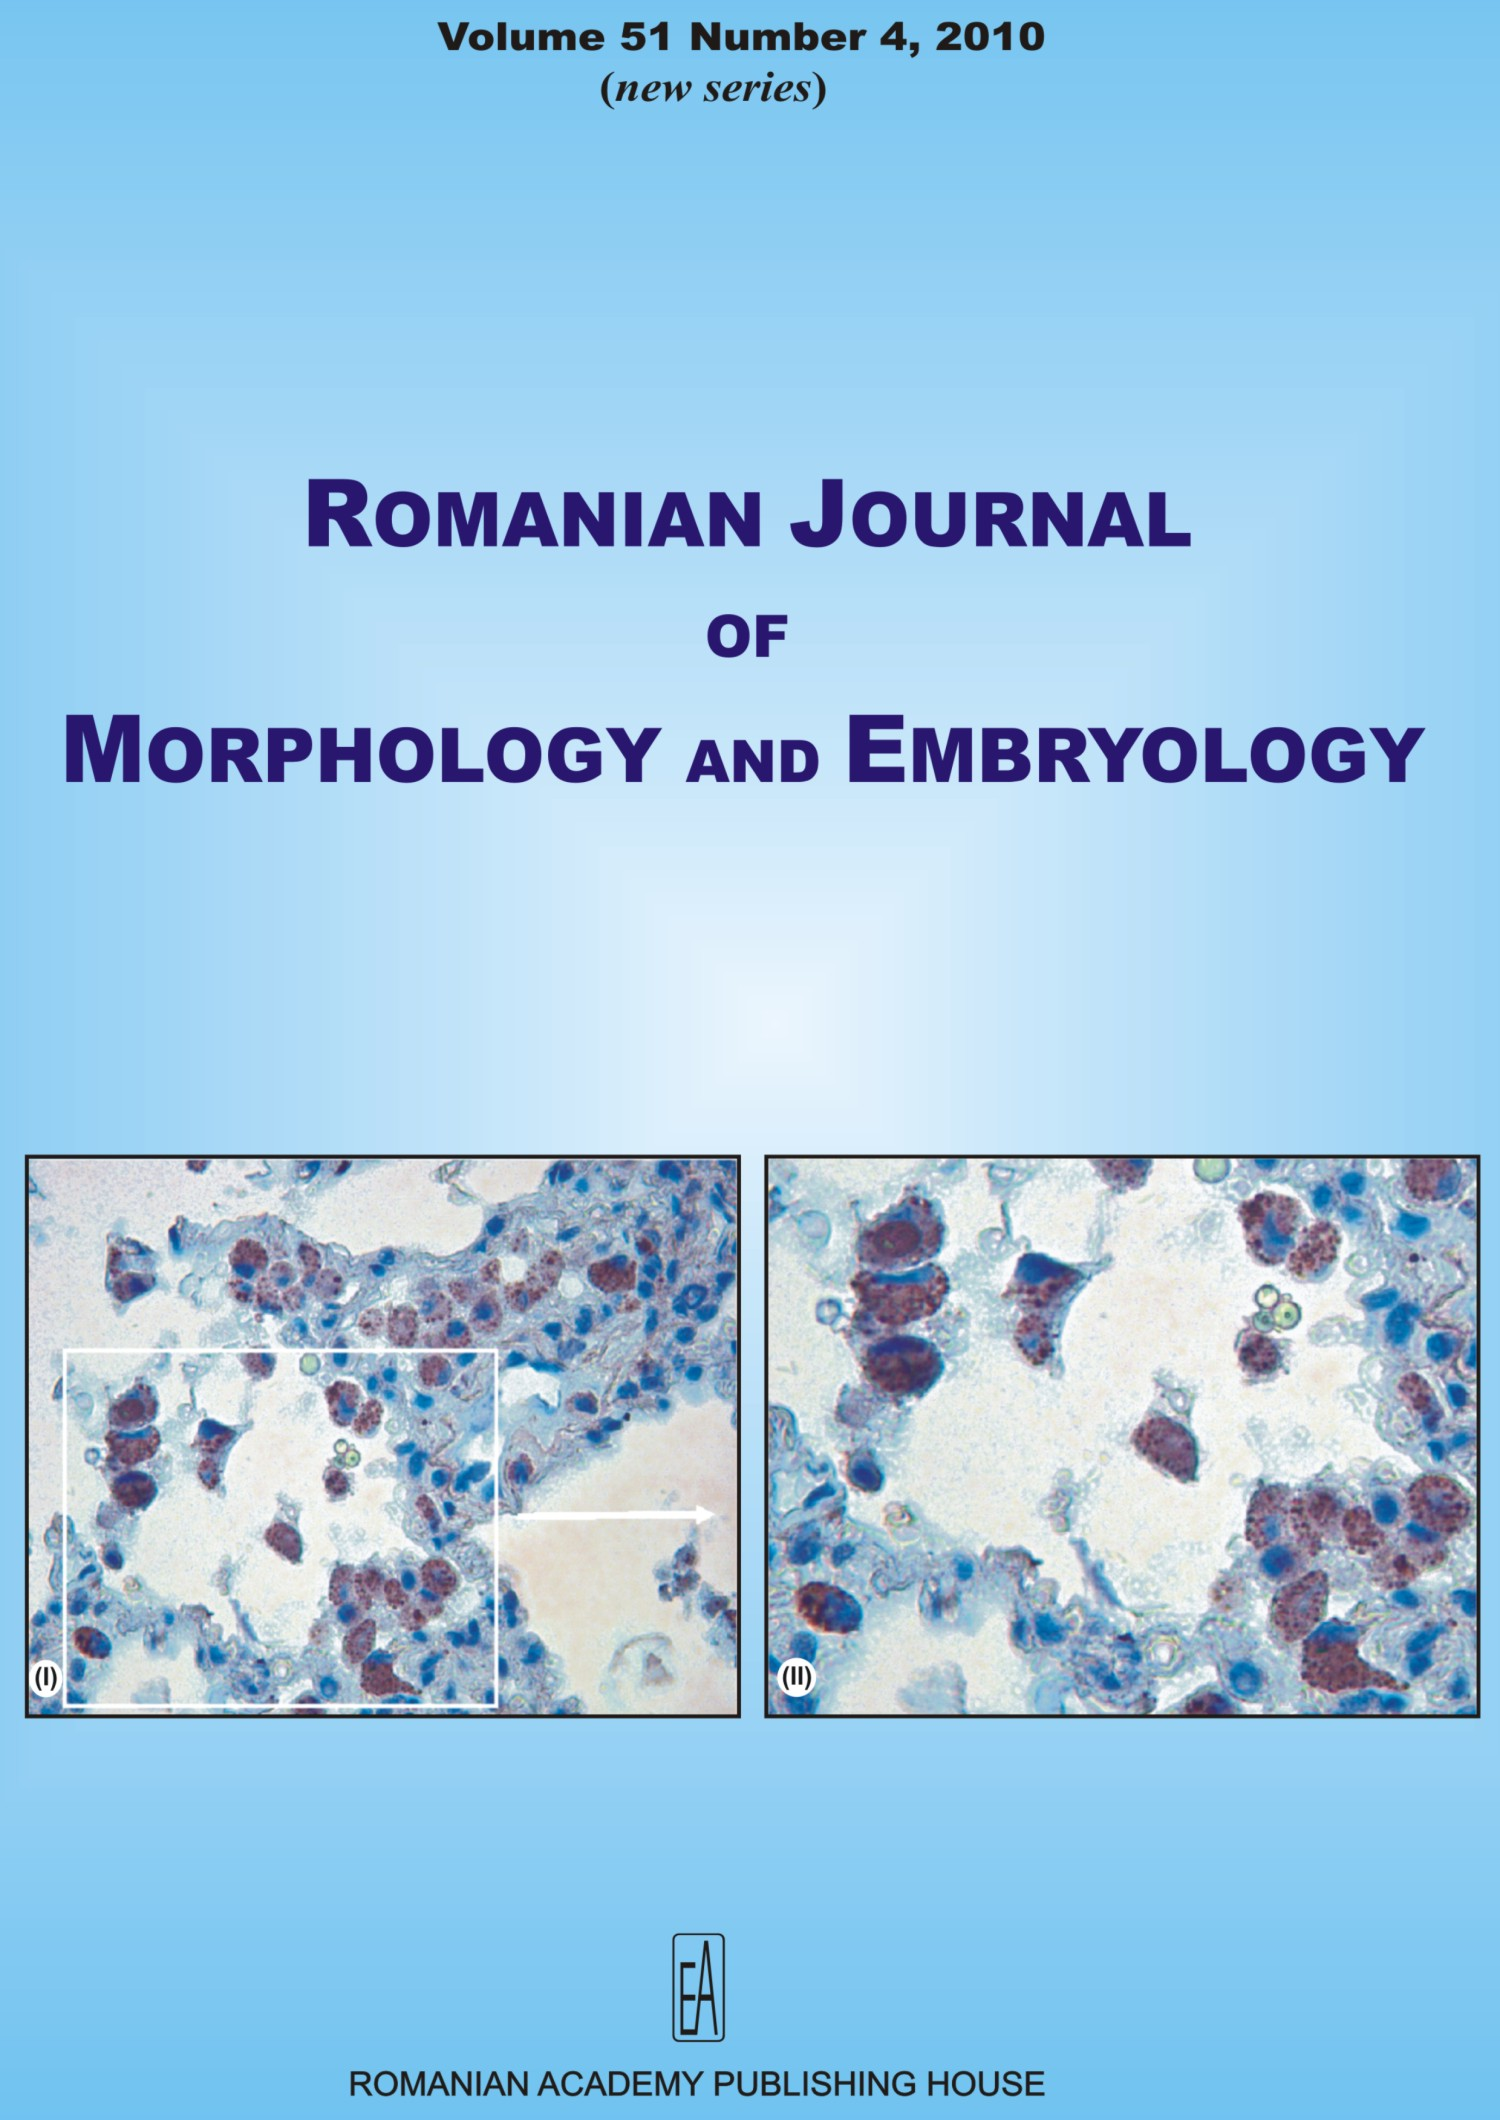 Romanian Journal of Morphology and Embryology, vol. 51 no. 4, 2010